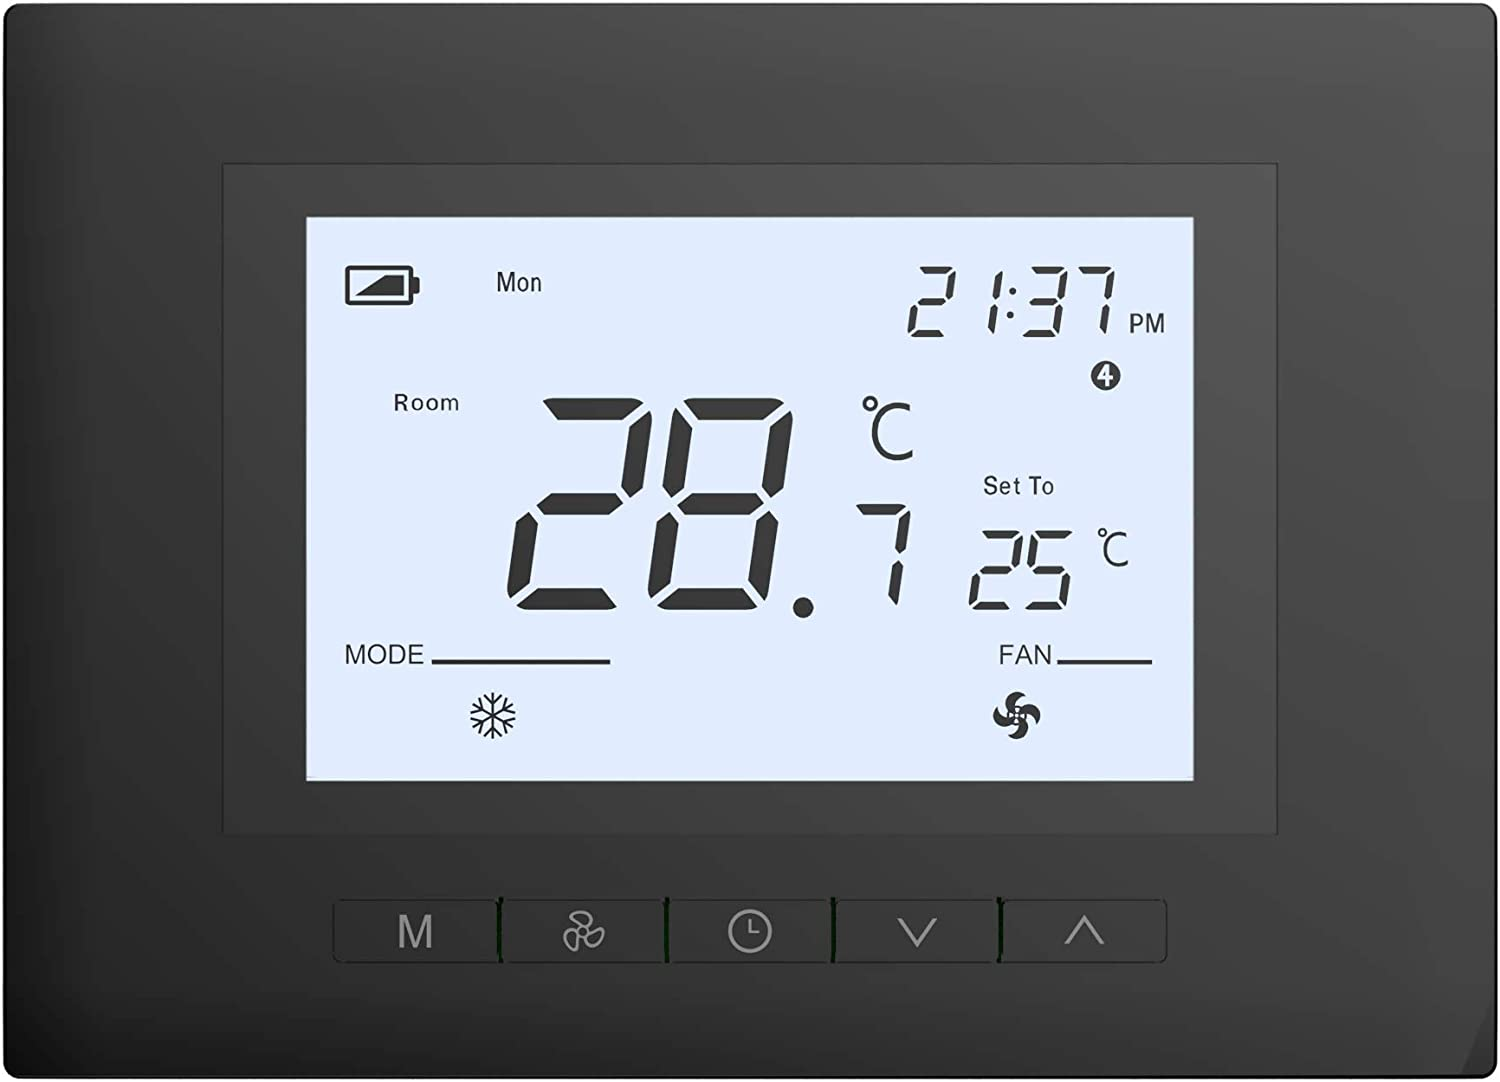 Ubipol Digital 7 Days Programmable Manual Home Thermostat Works with almost all system, Battery power or C wire,Black